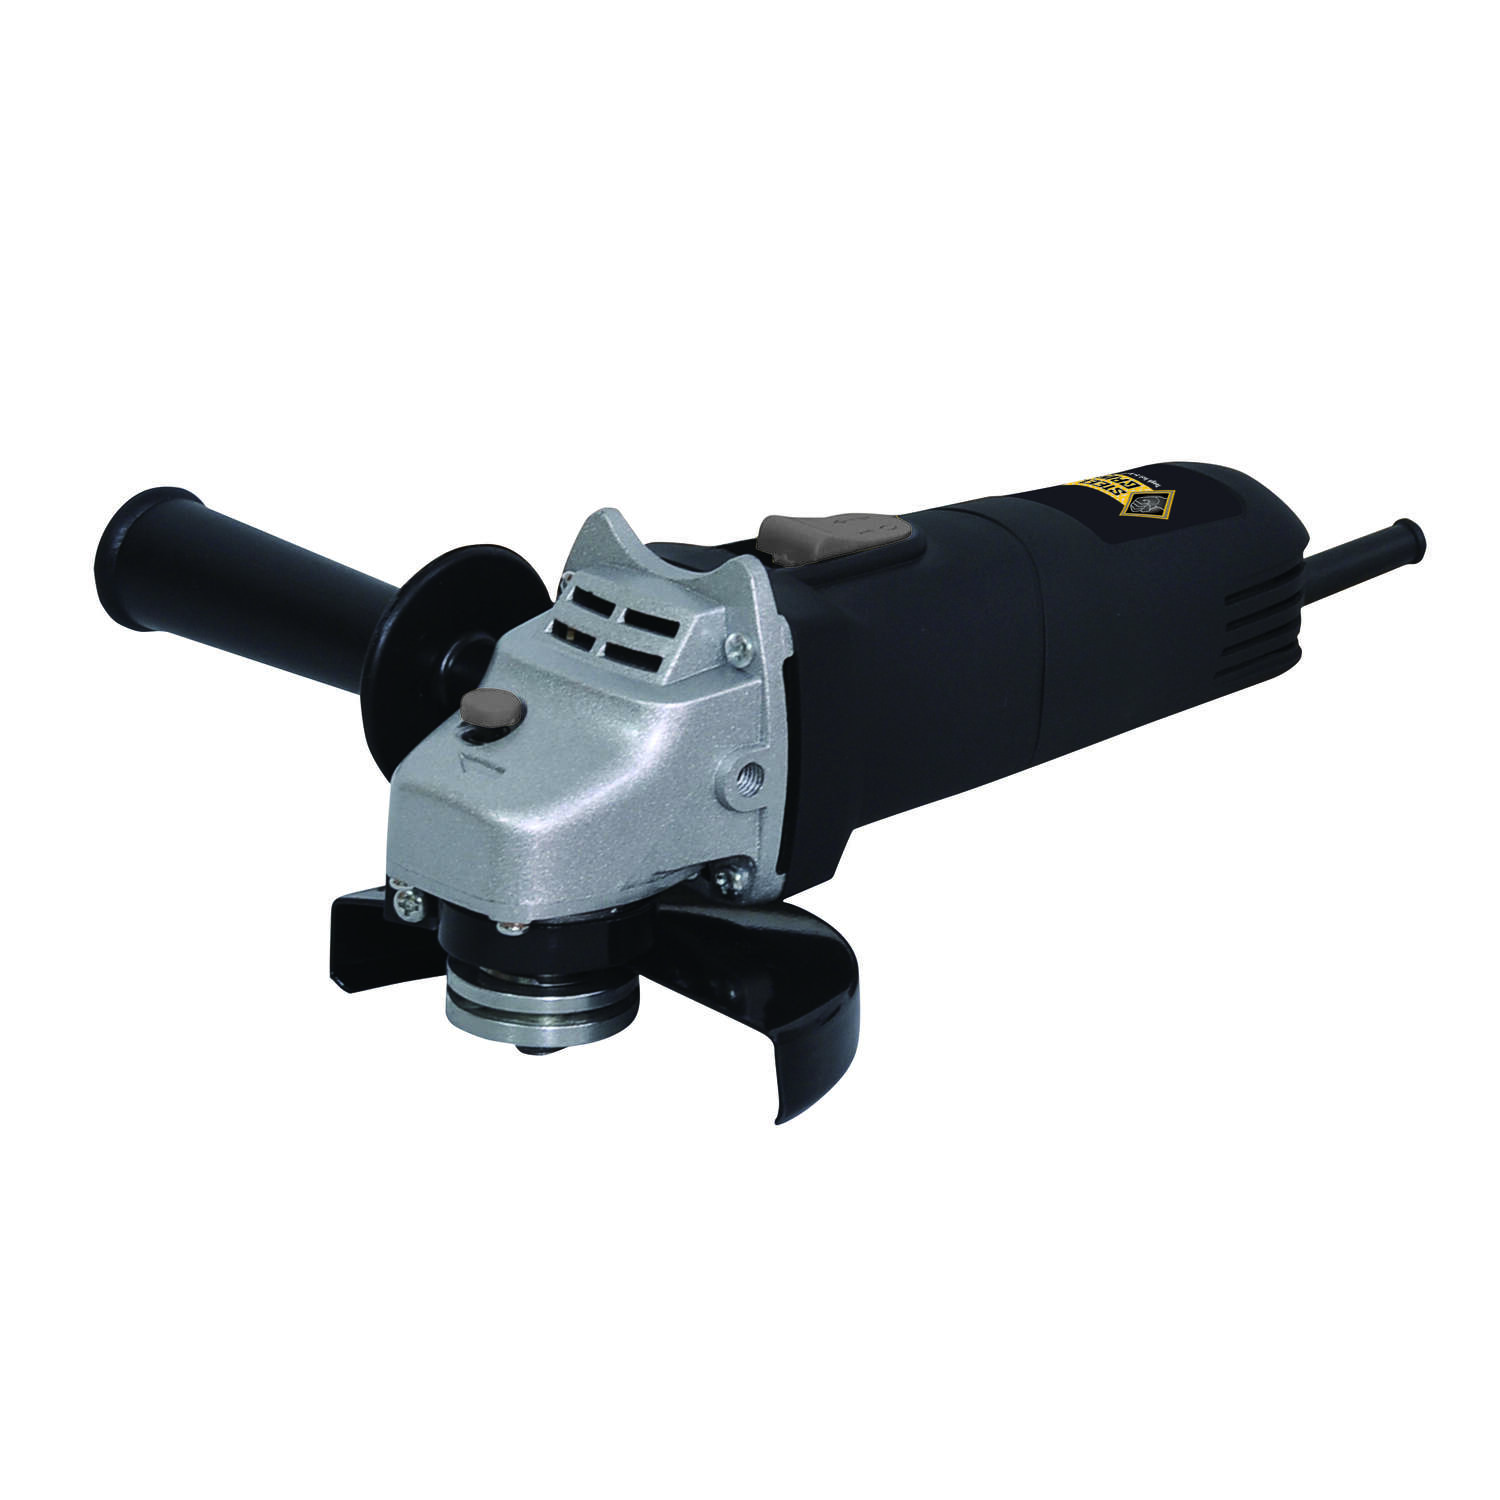 Steel Grip  Corded  5 amps 4-1/2 in. Angle Grinder  12000 rpm